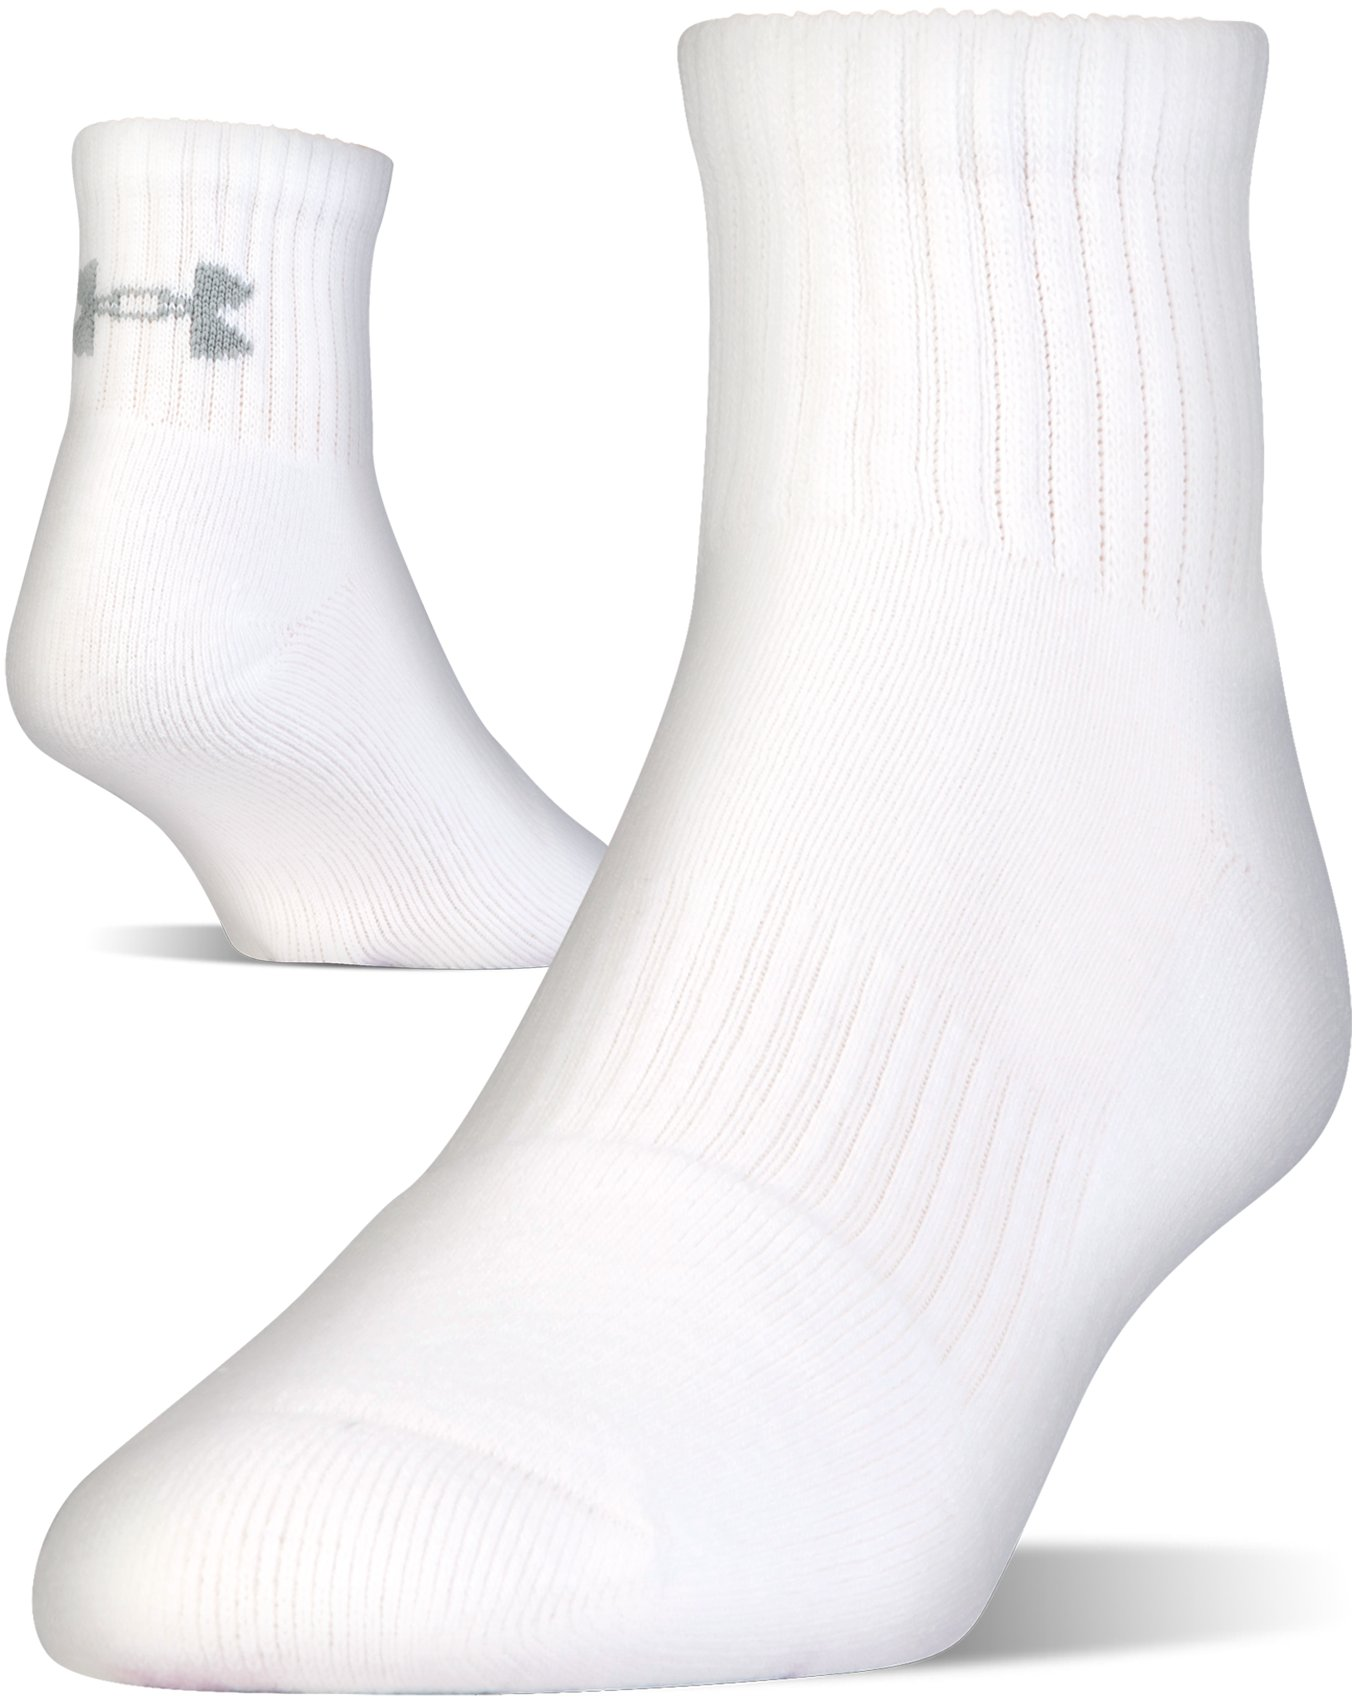 UA Charged Cotton® 2.0 Quarter Length Socks – 6-Pack, White, undefined